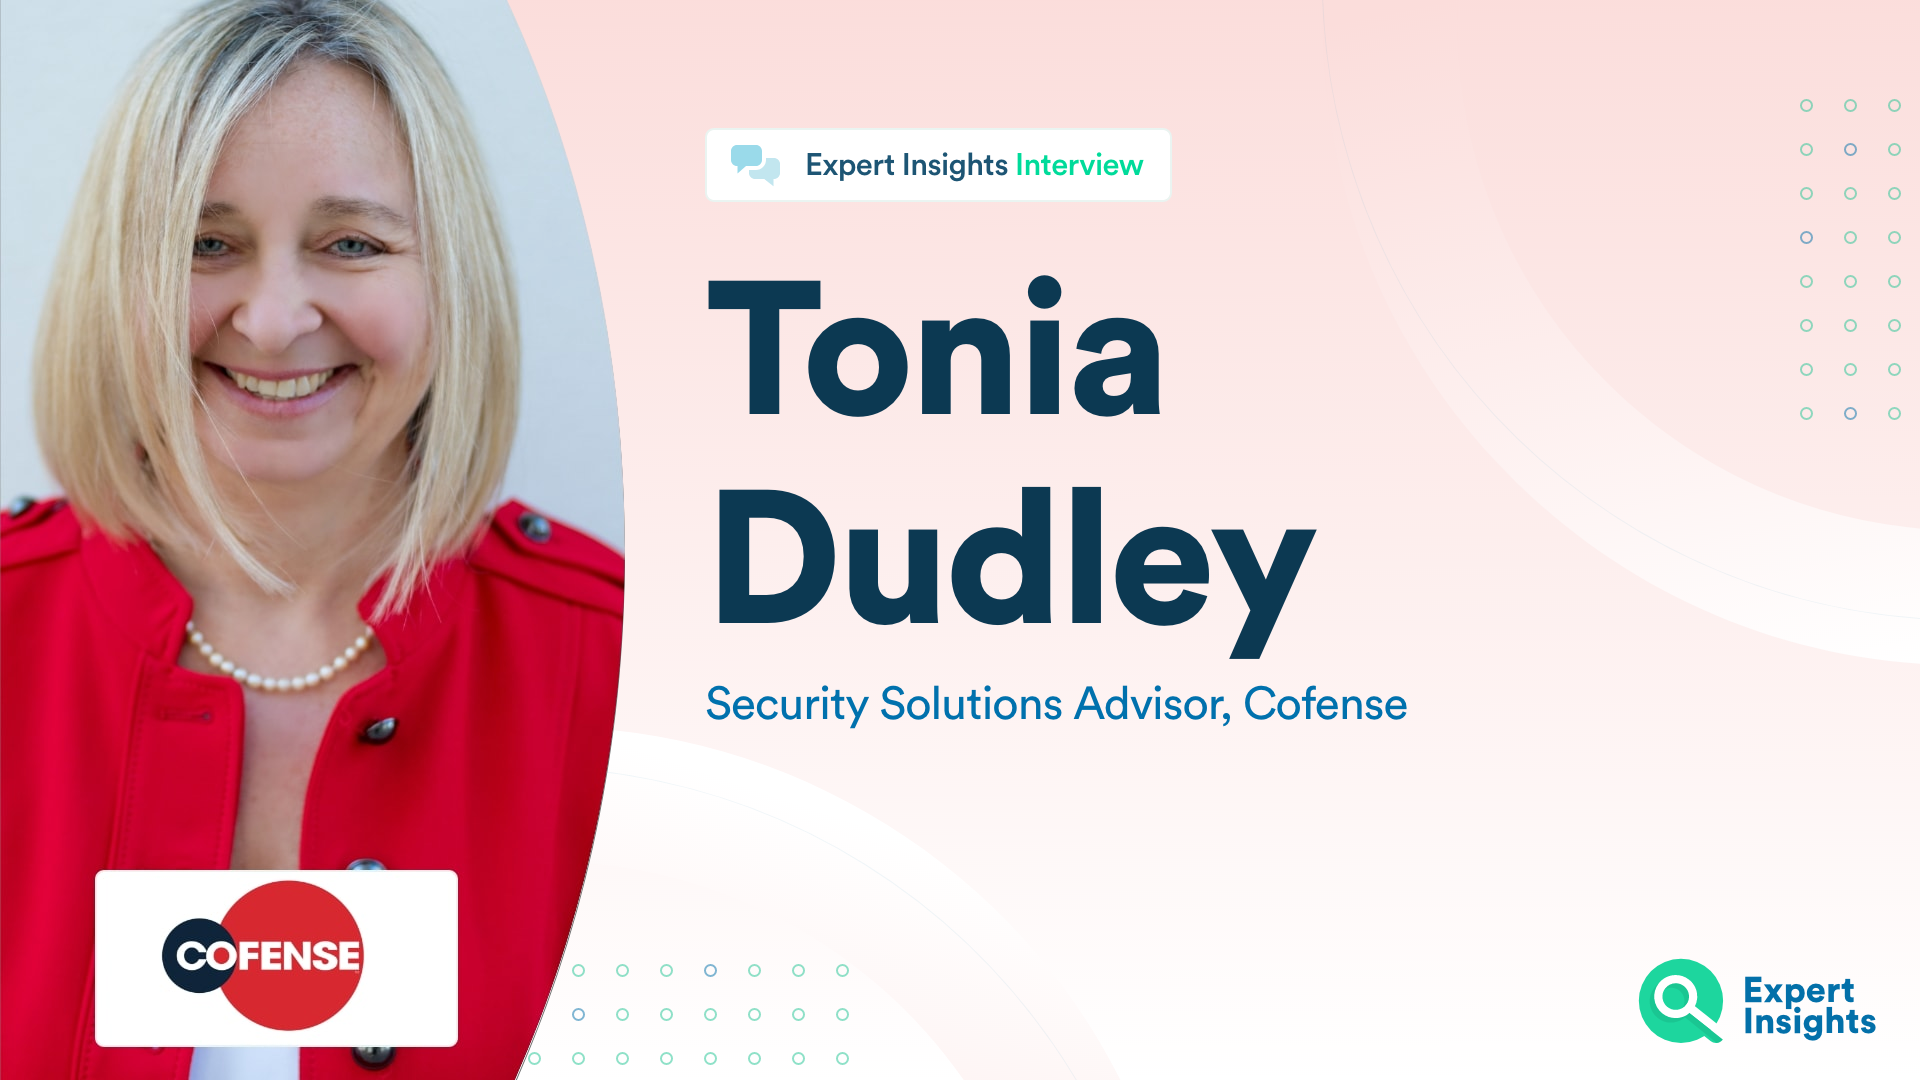 Expert Insights Interview With Tonia Dudley Of Cofense